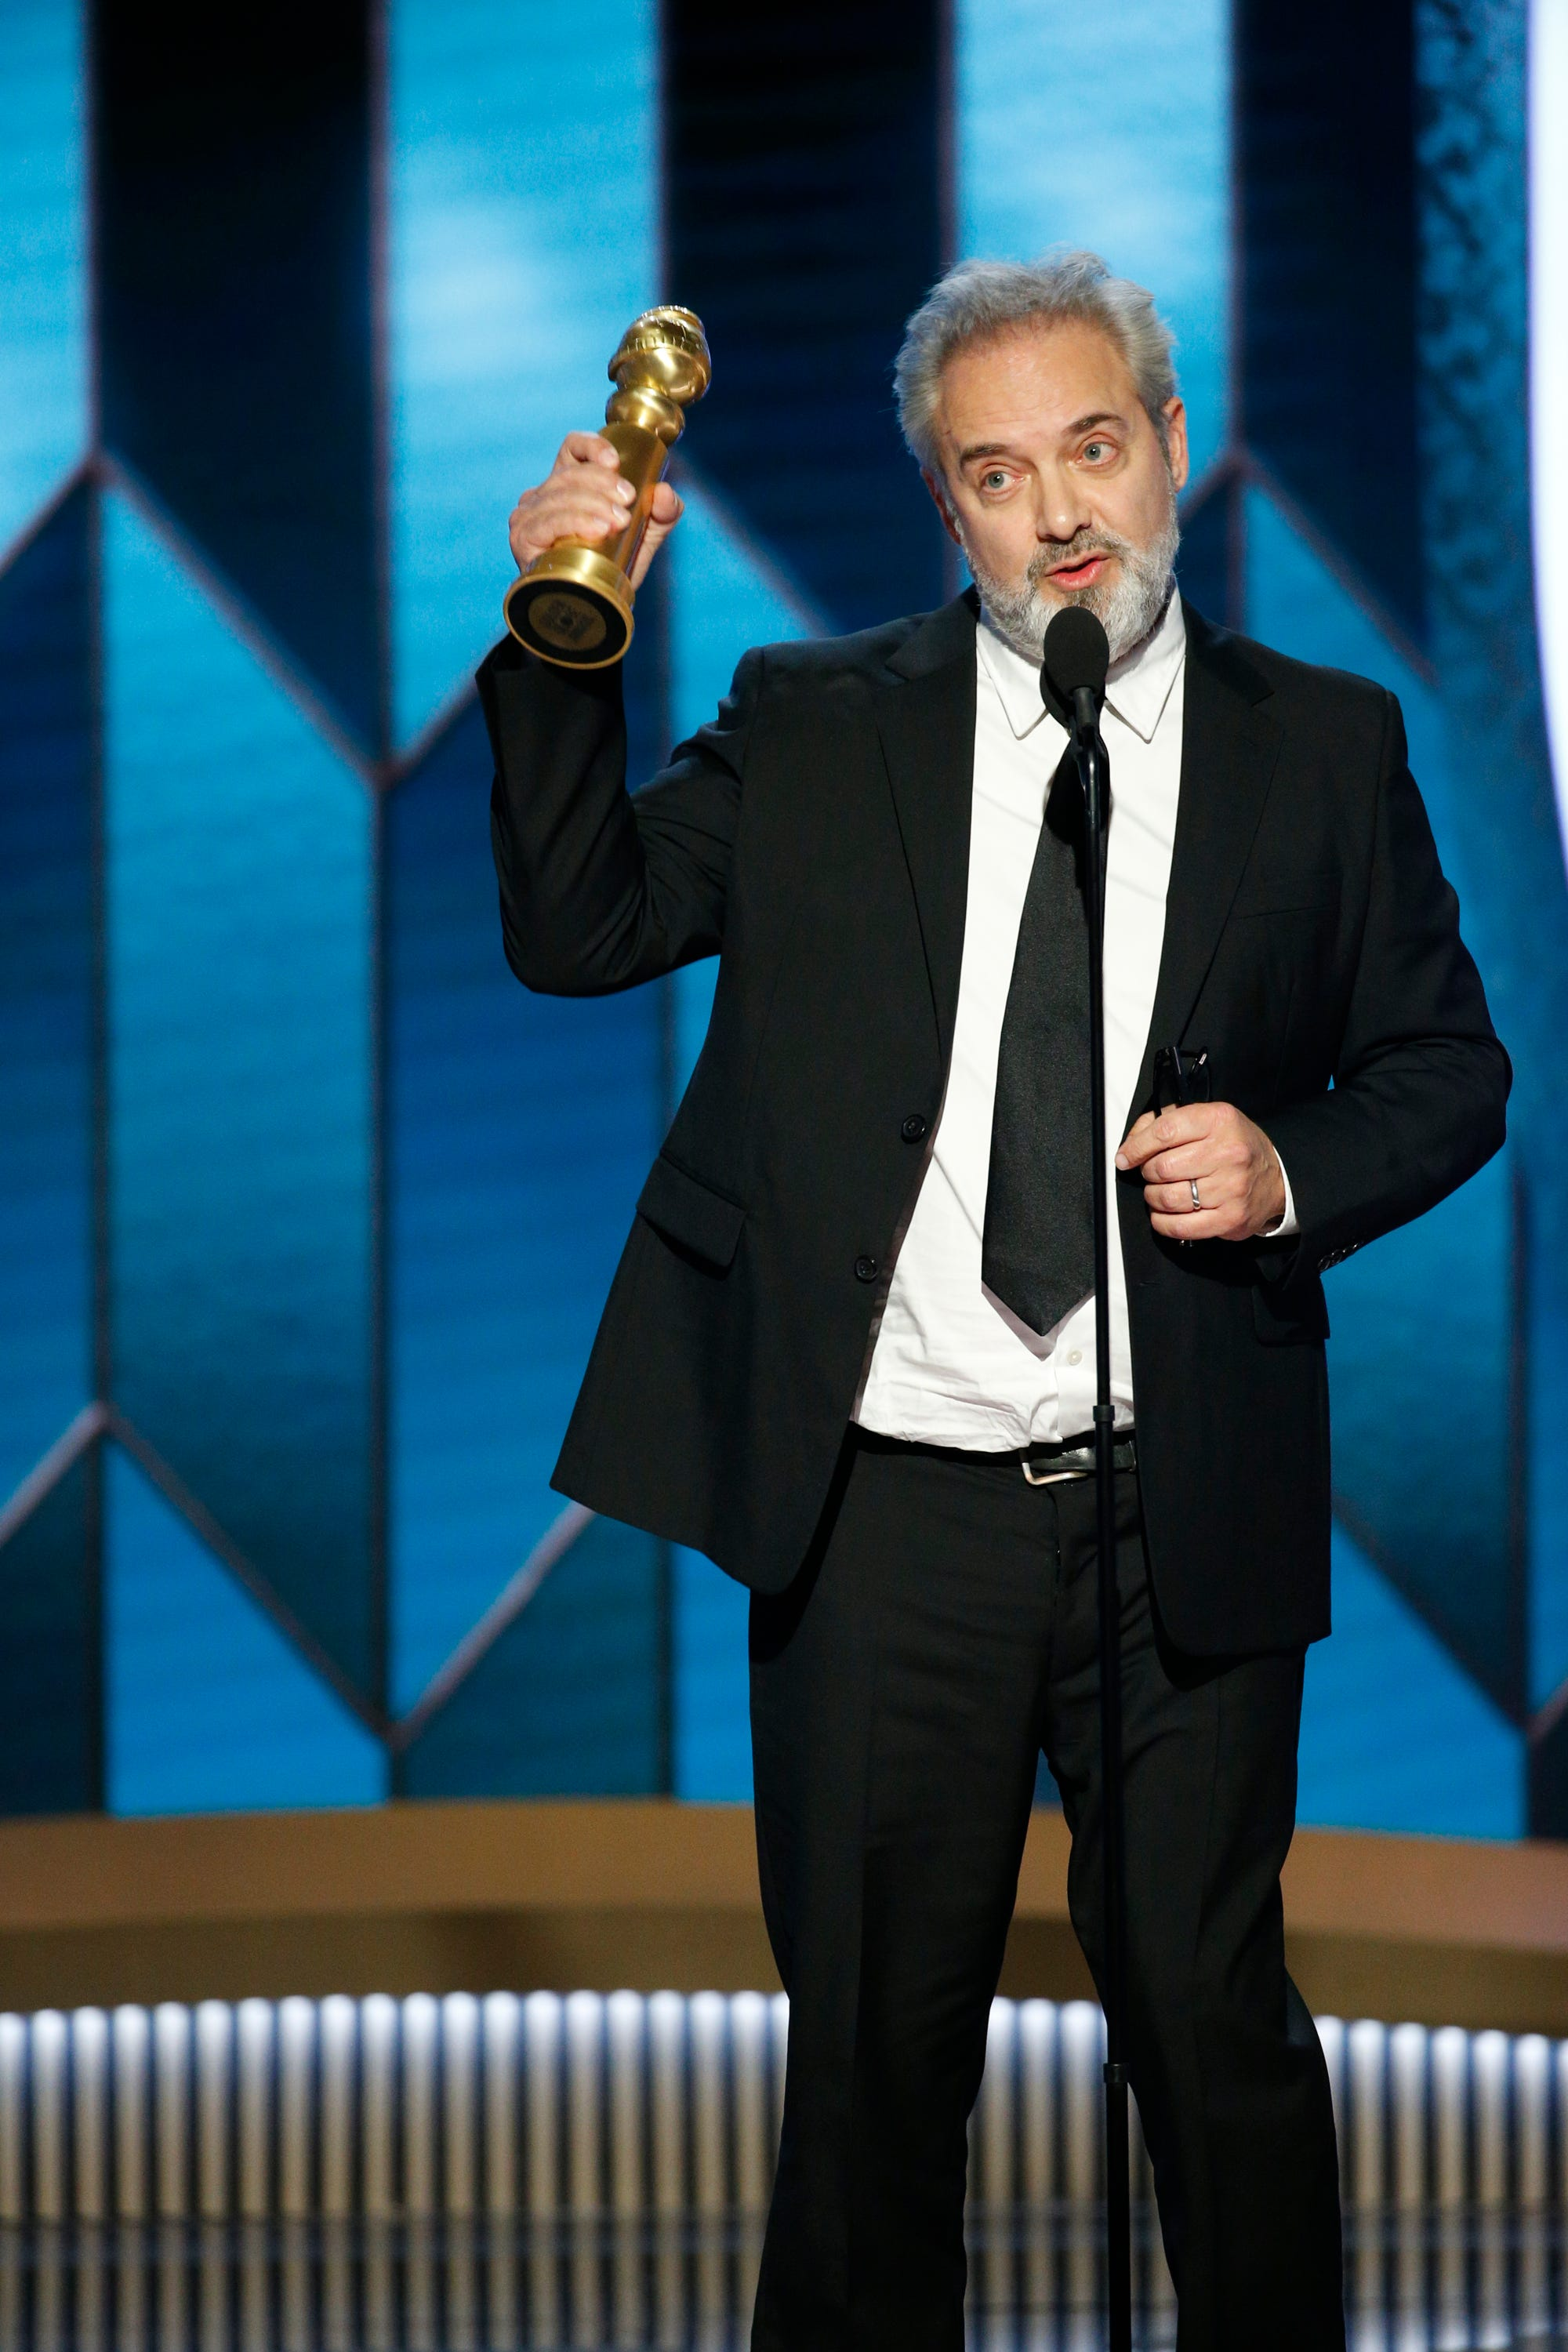 Golden Globes 2020:  1917  wins best drama,  Once Upon a Time in Hollywood  takes best comedy